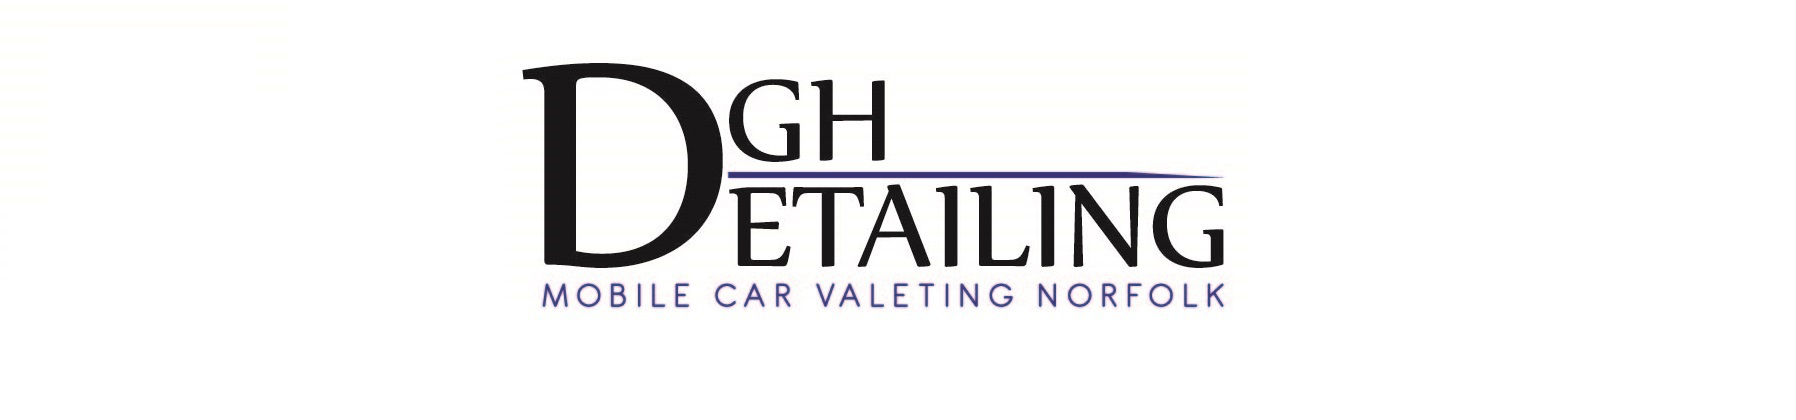 DGH Detailing mobile car valeting